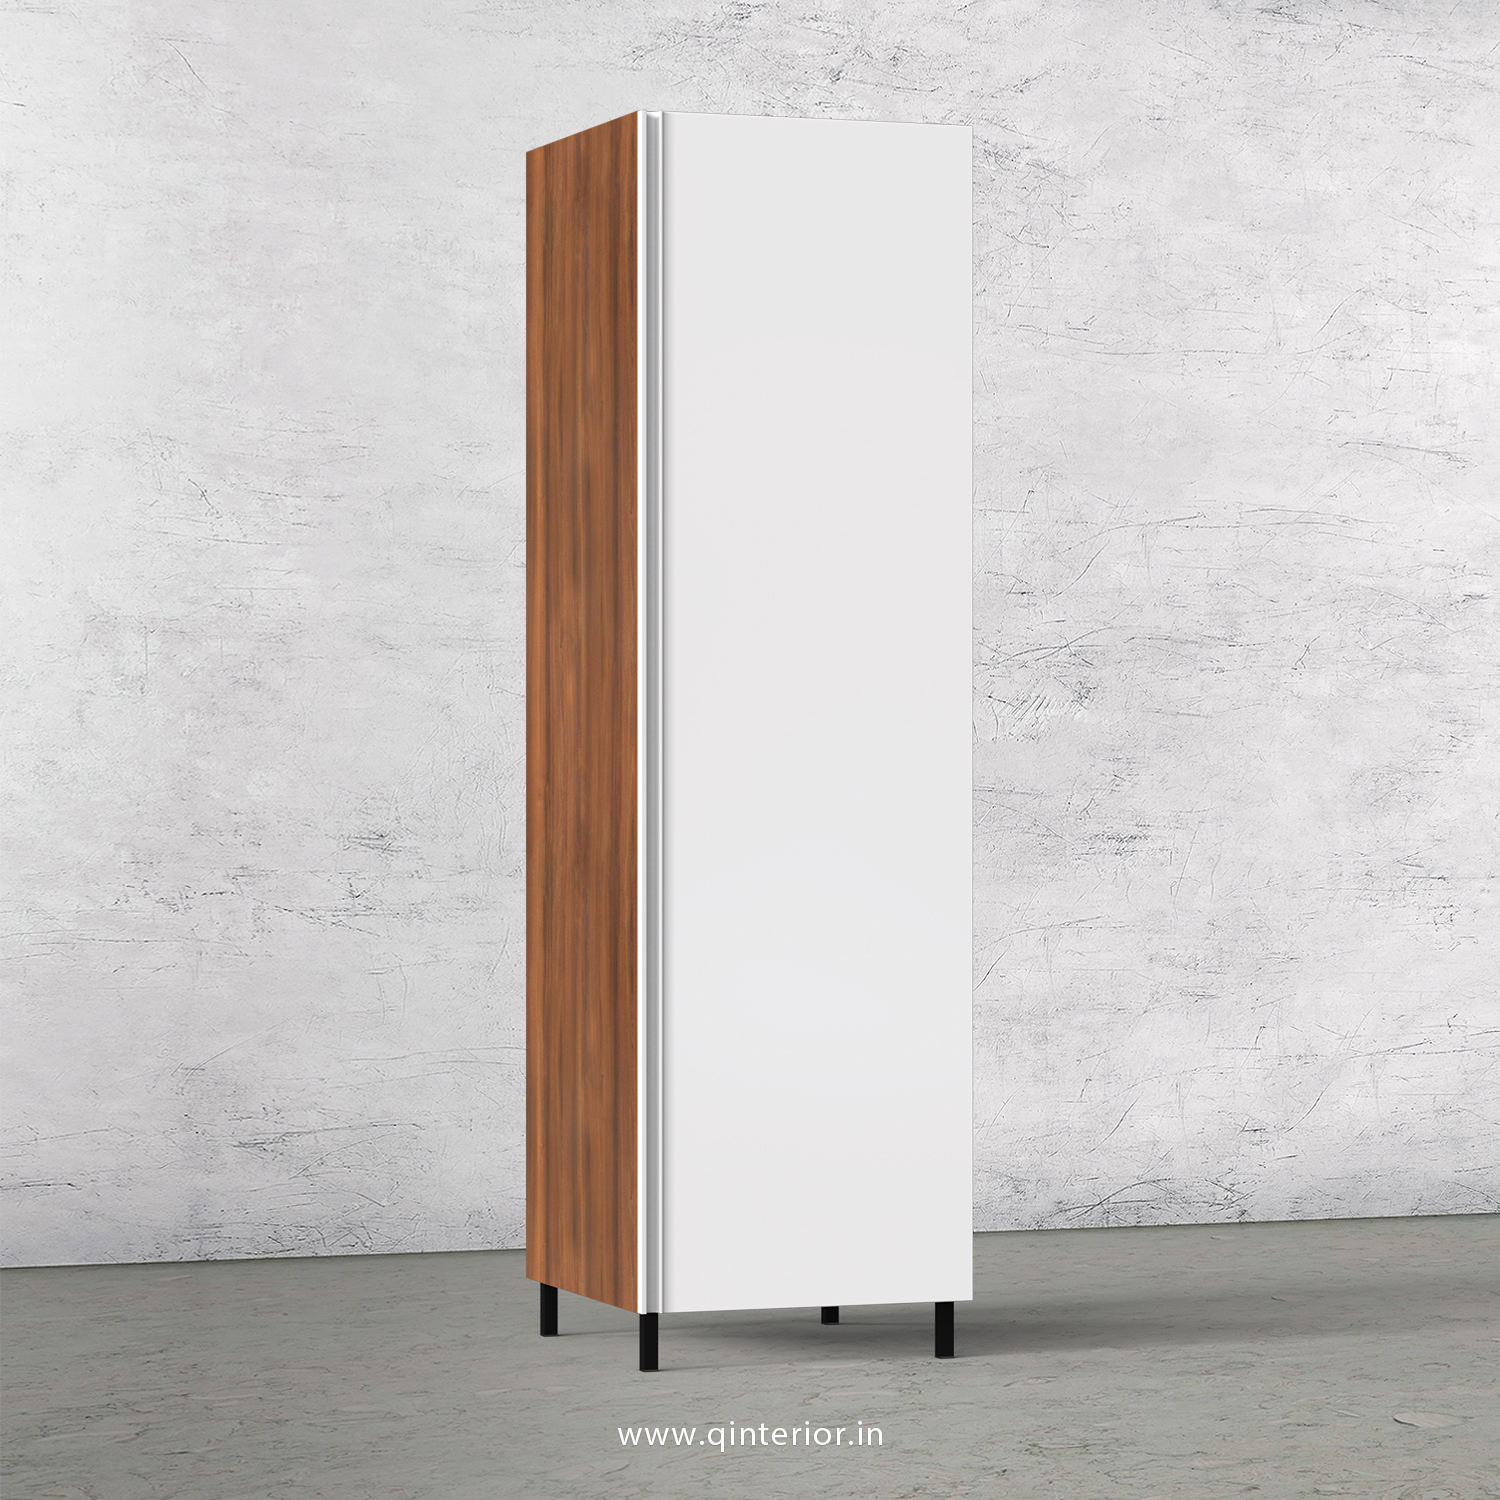 Lambent Kitchen Tall Unit in Teak and White Finish - KTB801 C06